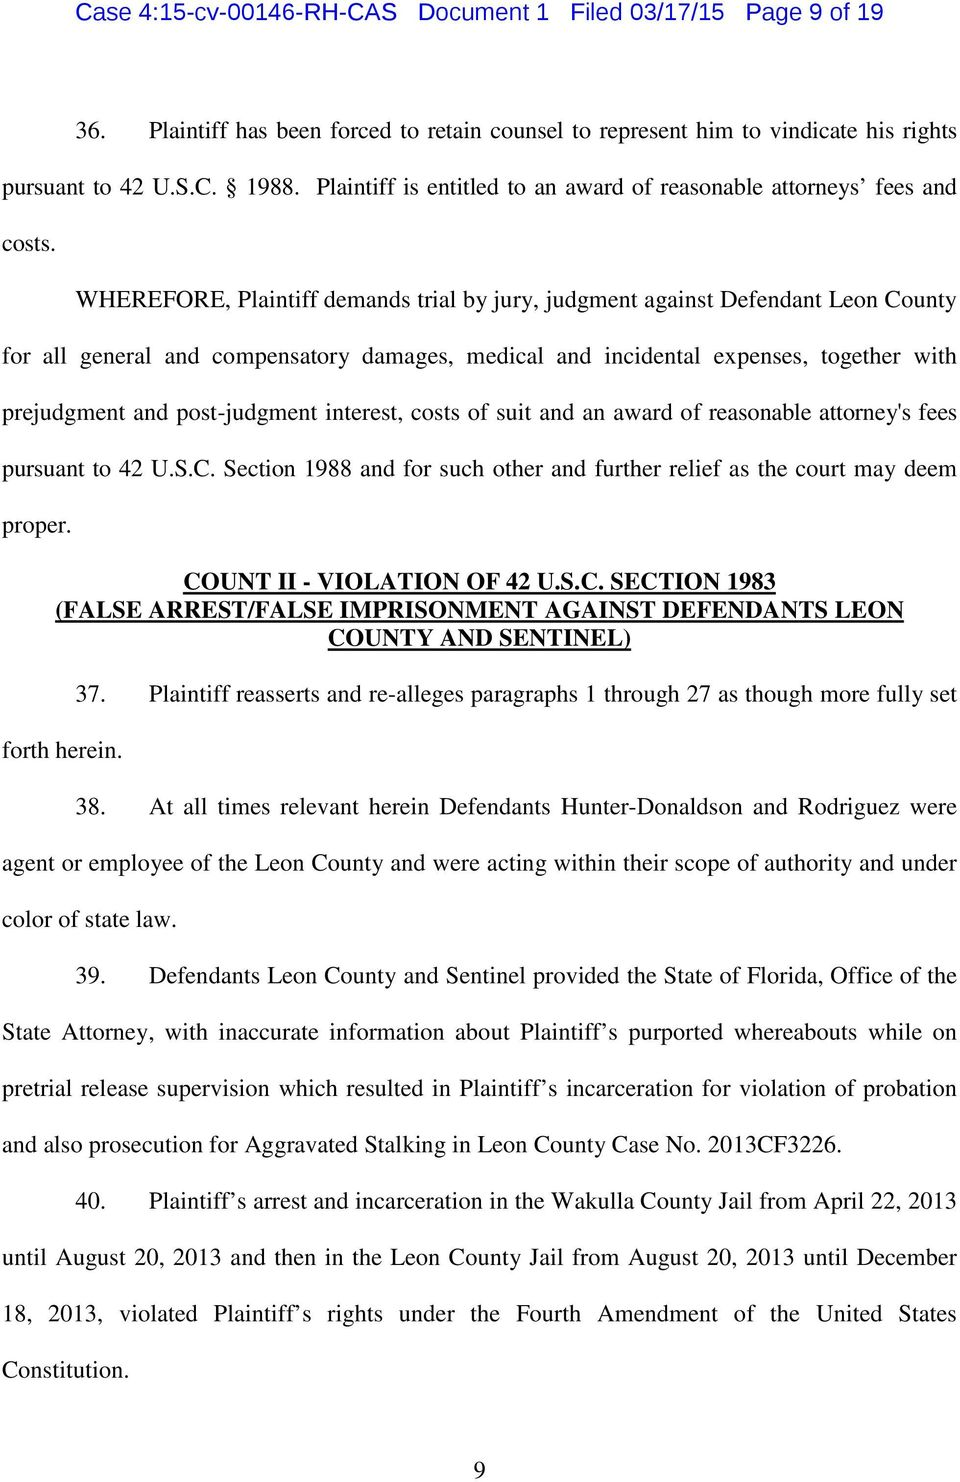 WHEREFORE, Plaintiff demands trial by jury, judgment against Defendant Leon County for all general and compensatory damages, medical and incidental expenses, together with prejudgment and